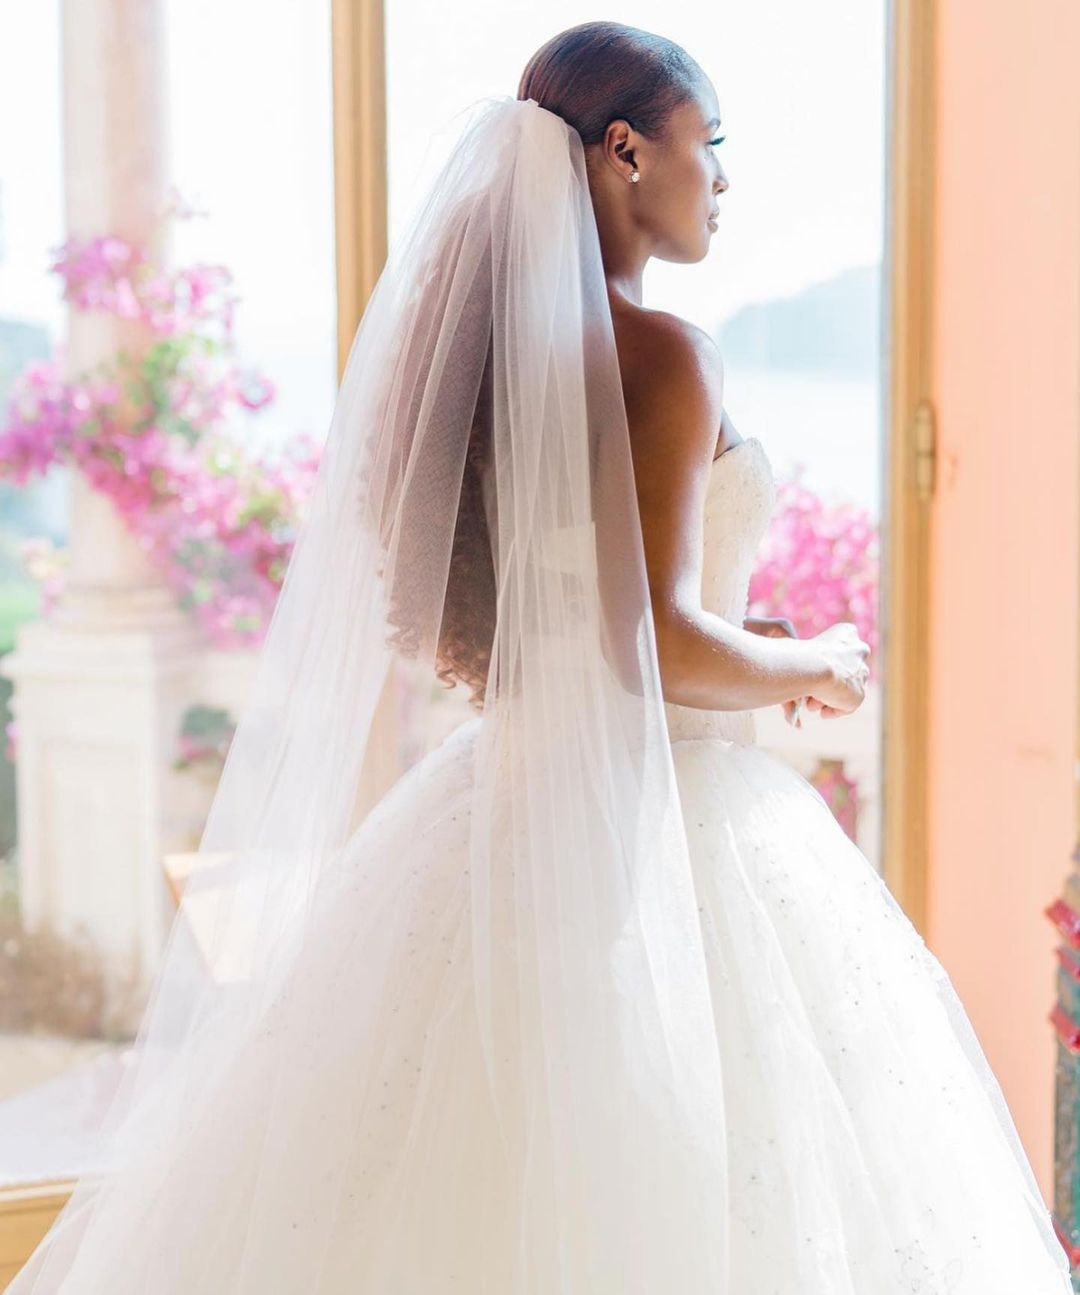 American Actress Issa Rae marries Businessman Louis Diame in intimate ceremony 10